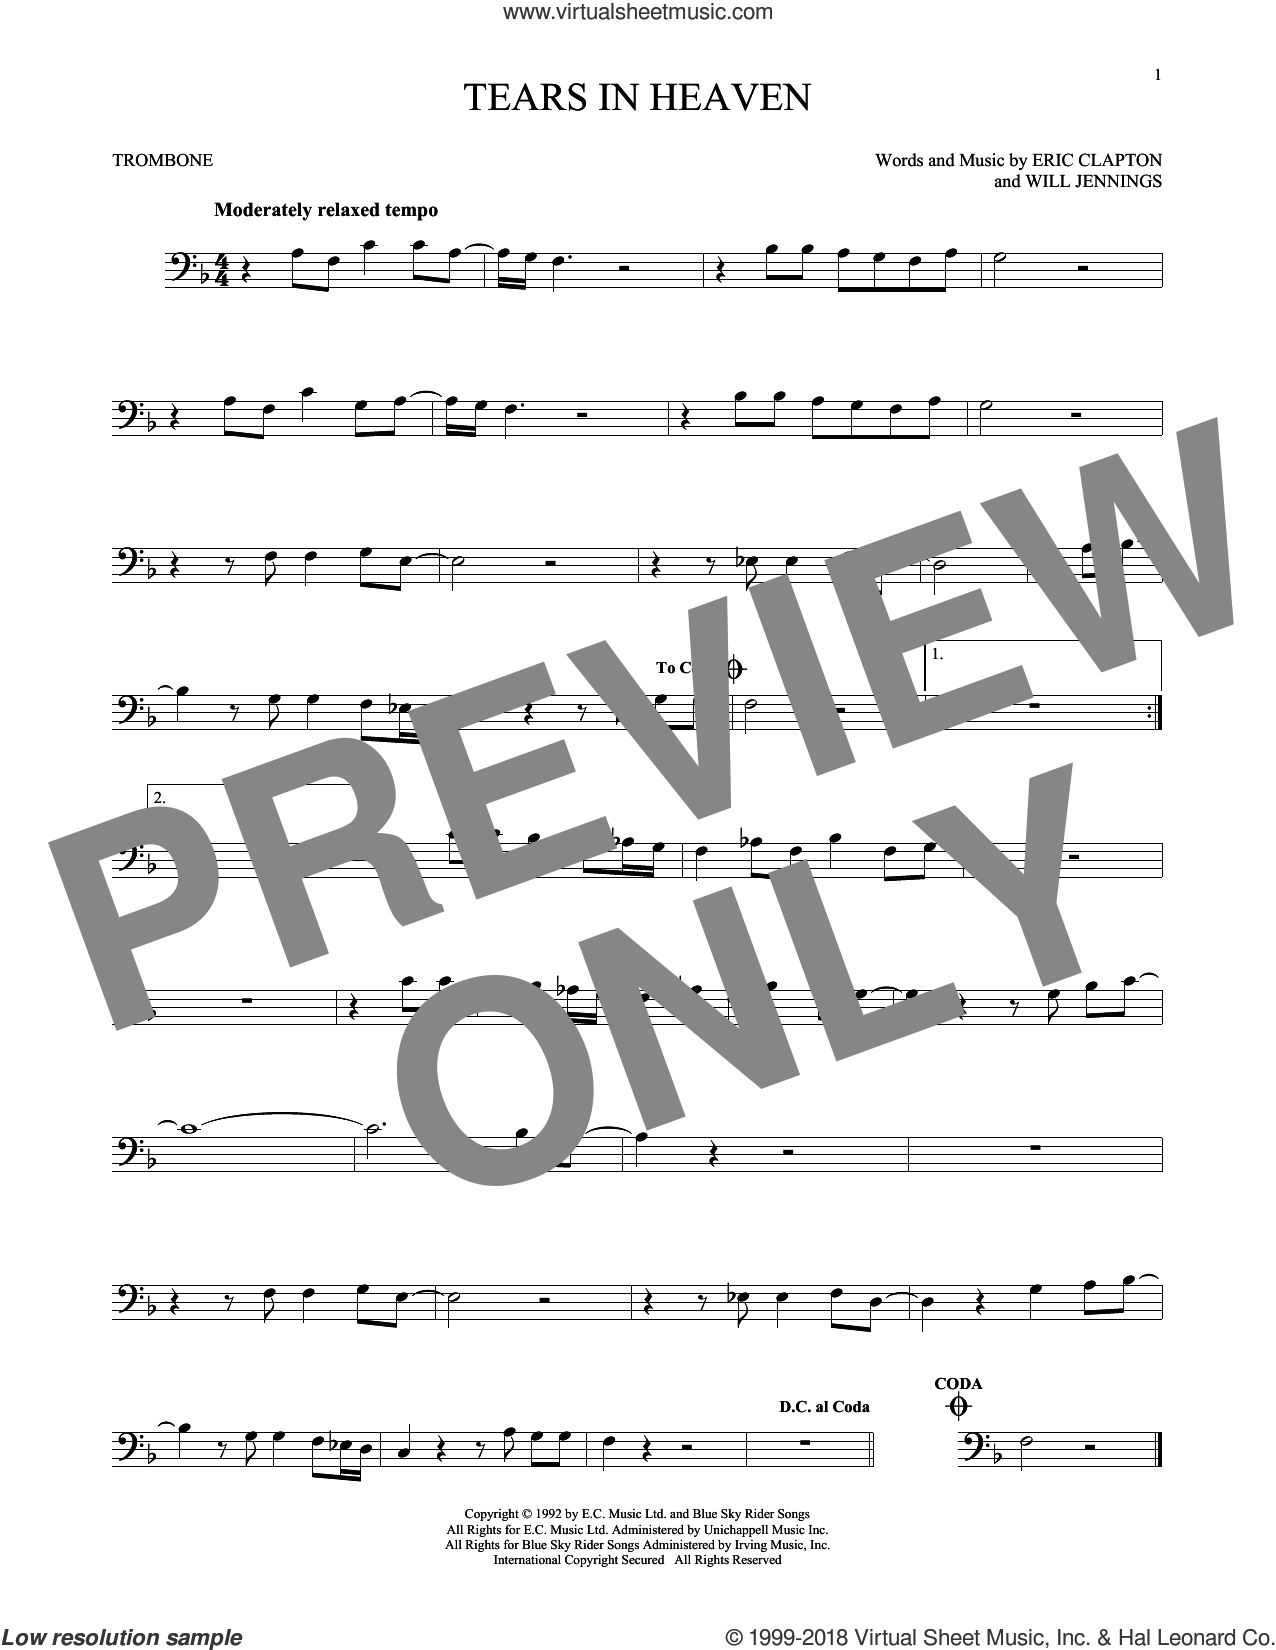 Tears In Heaven sheet music for trombone solo by Eric Clapton and Will Jennings, intermediate skill level